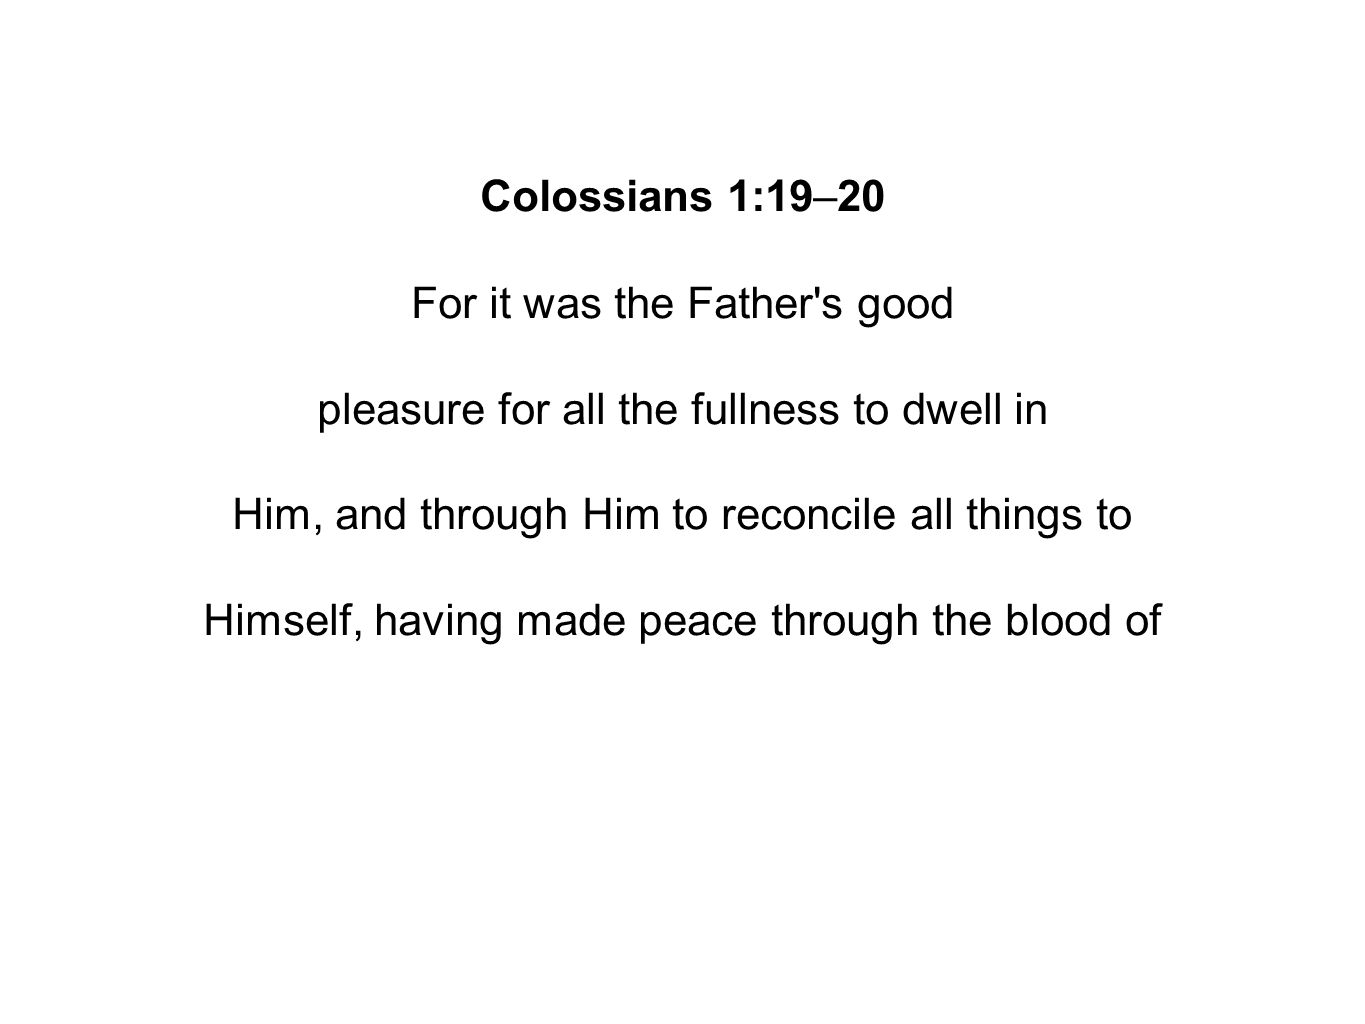 Colossians 1:19–20 For it was the Father s good pleasure for all the fullness to dwell in Him, and through Him to reconcile all things to Himself, having made peace through the blood of